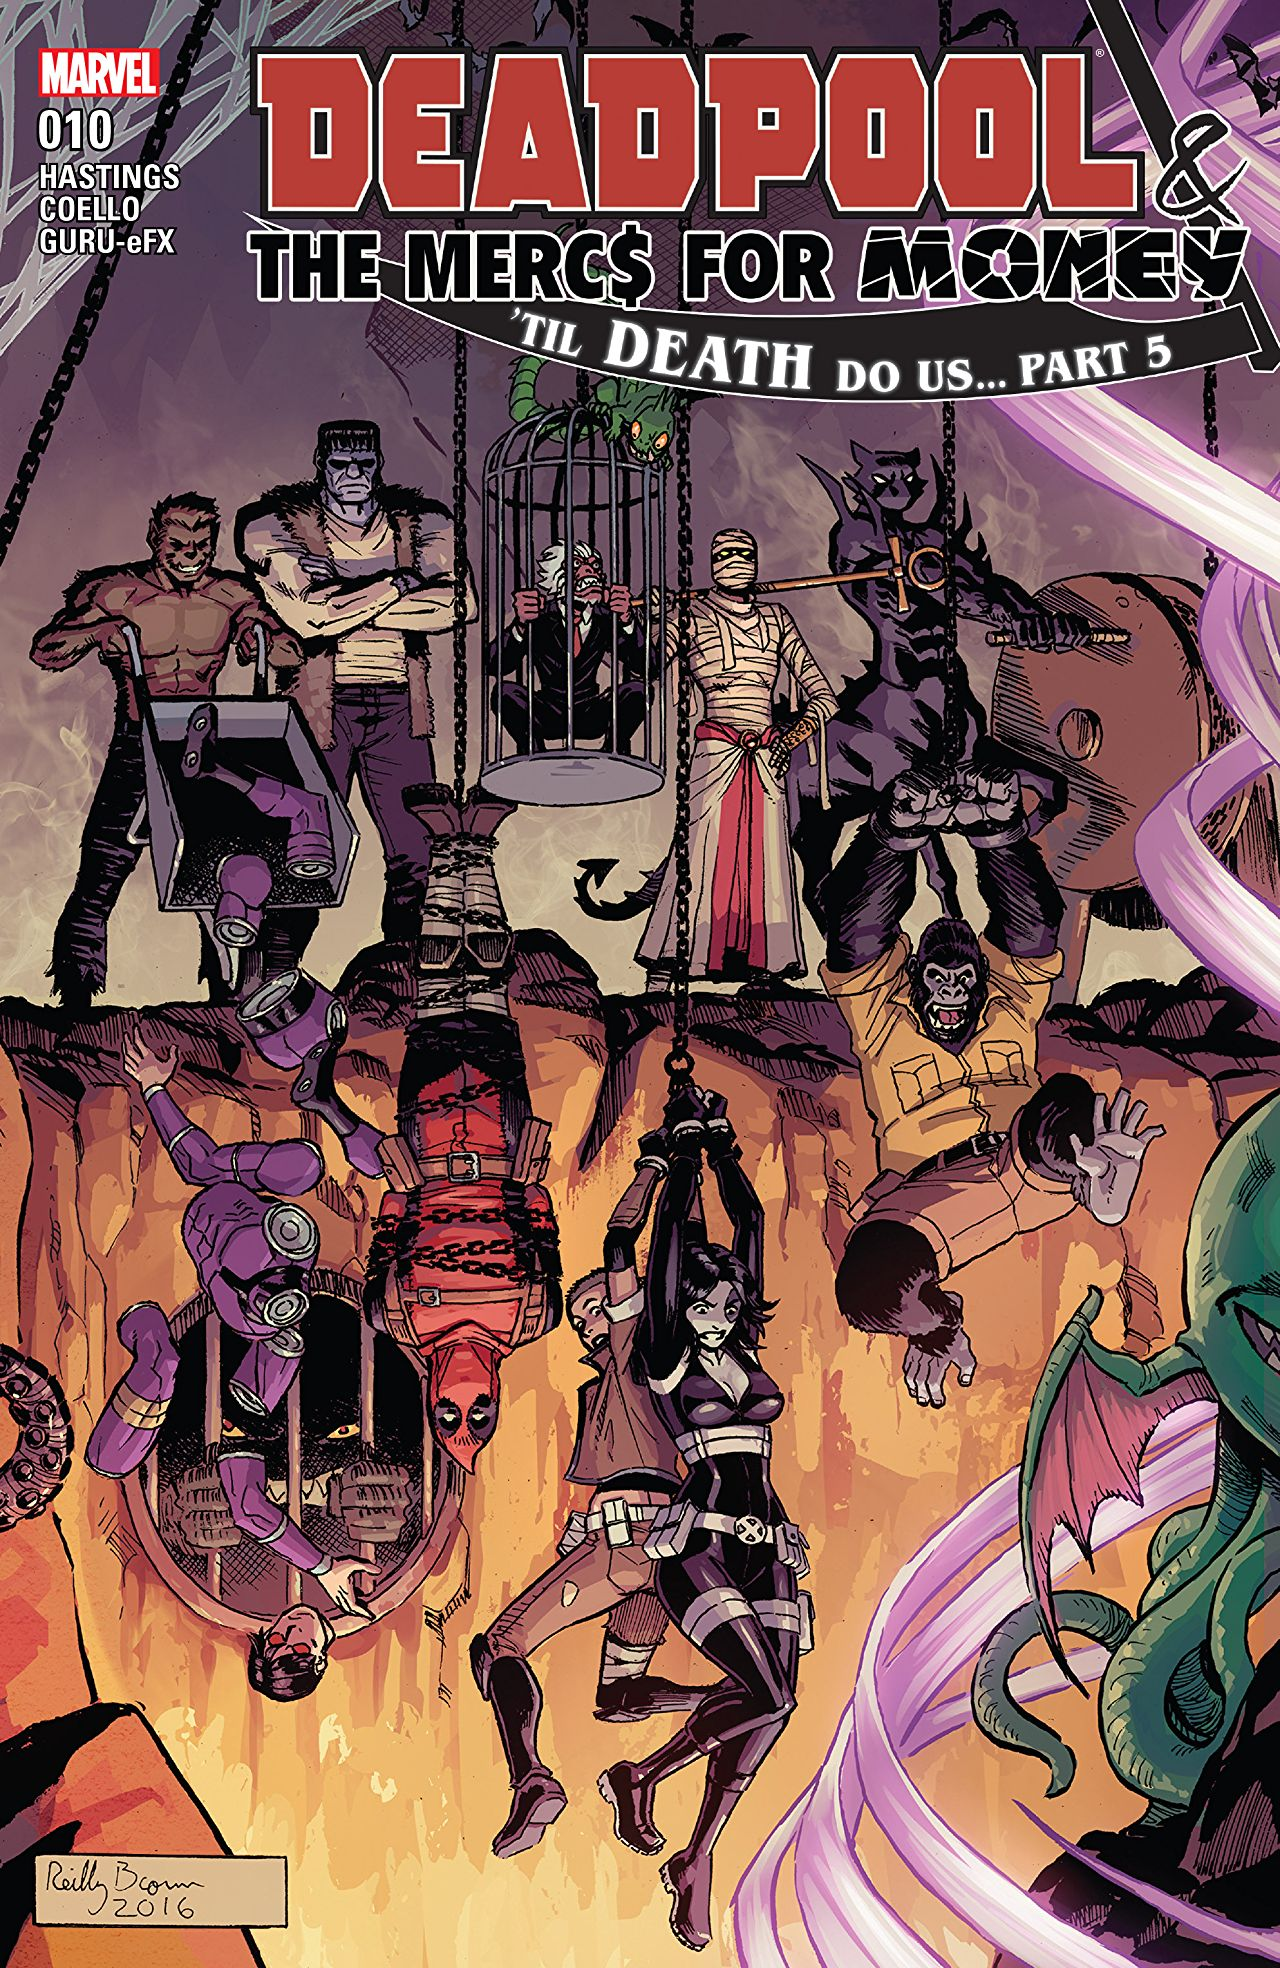 'Deadpool: World's Greatest Vol. 8: Till Death Do Us...' review: Madcap monster fun worthy of your chuckles